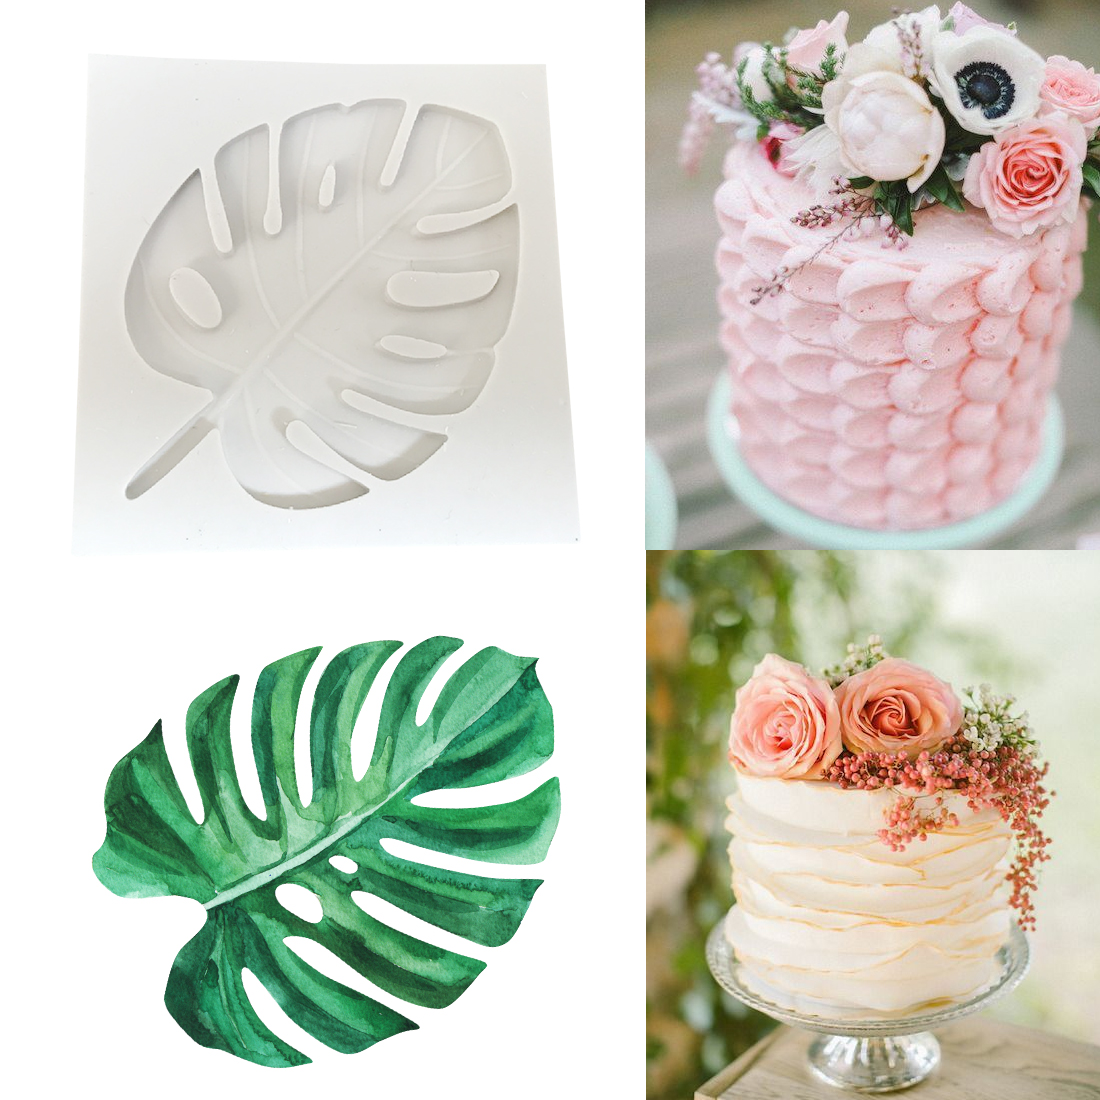 Silicone Form 1PC Cake Mold Leaves Shape Birthday Chocolate Soap Moulds Cake Decorating Tools Kitchen Cake Baking Stencils